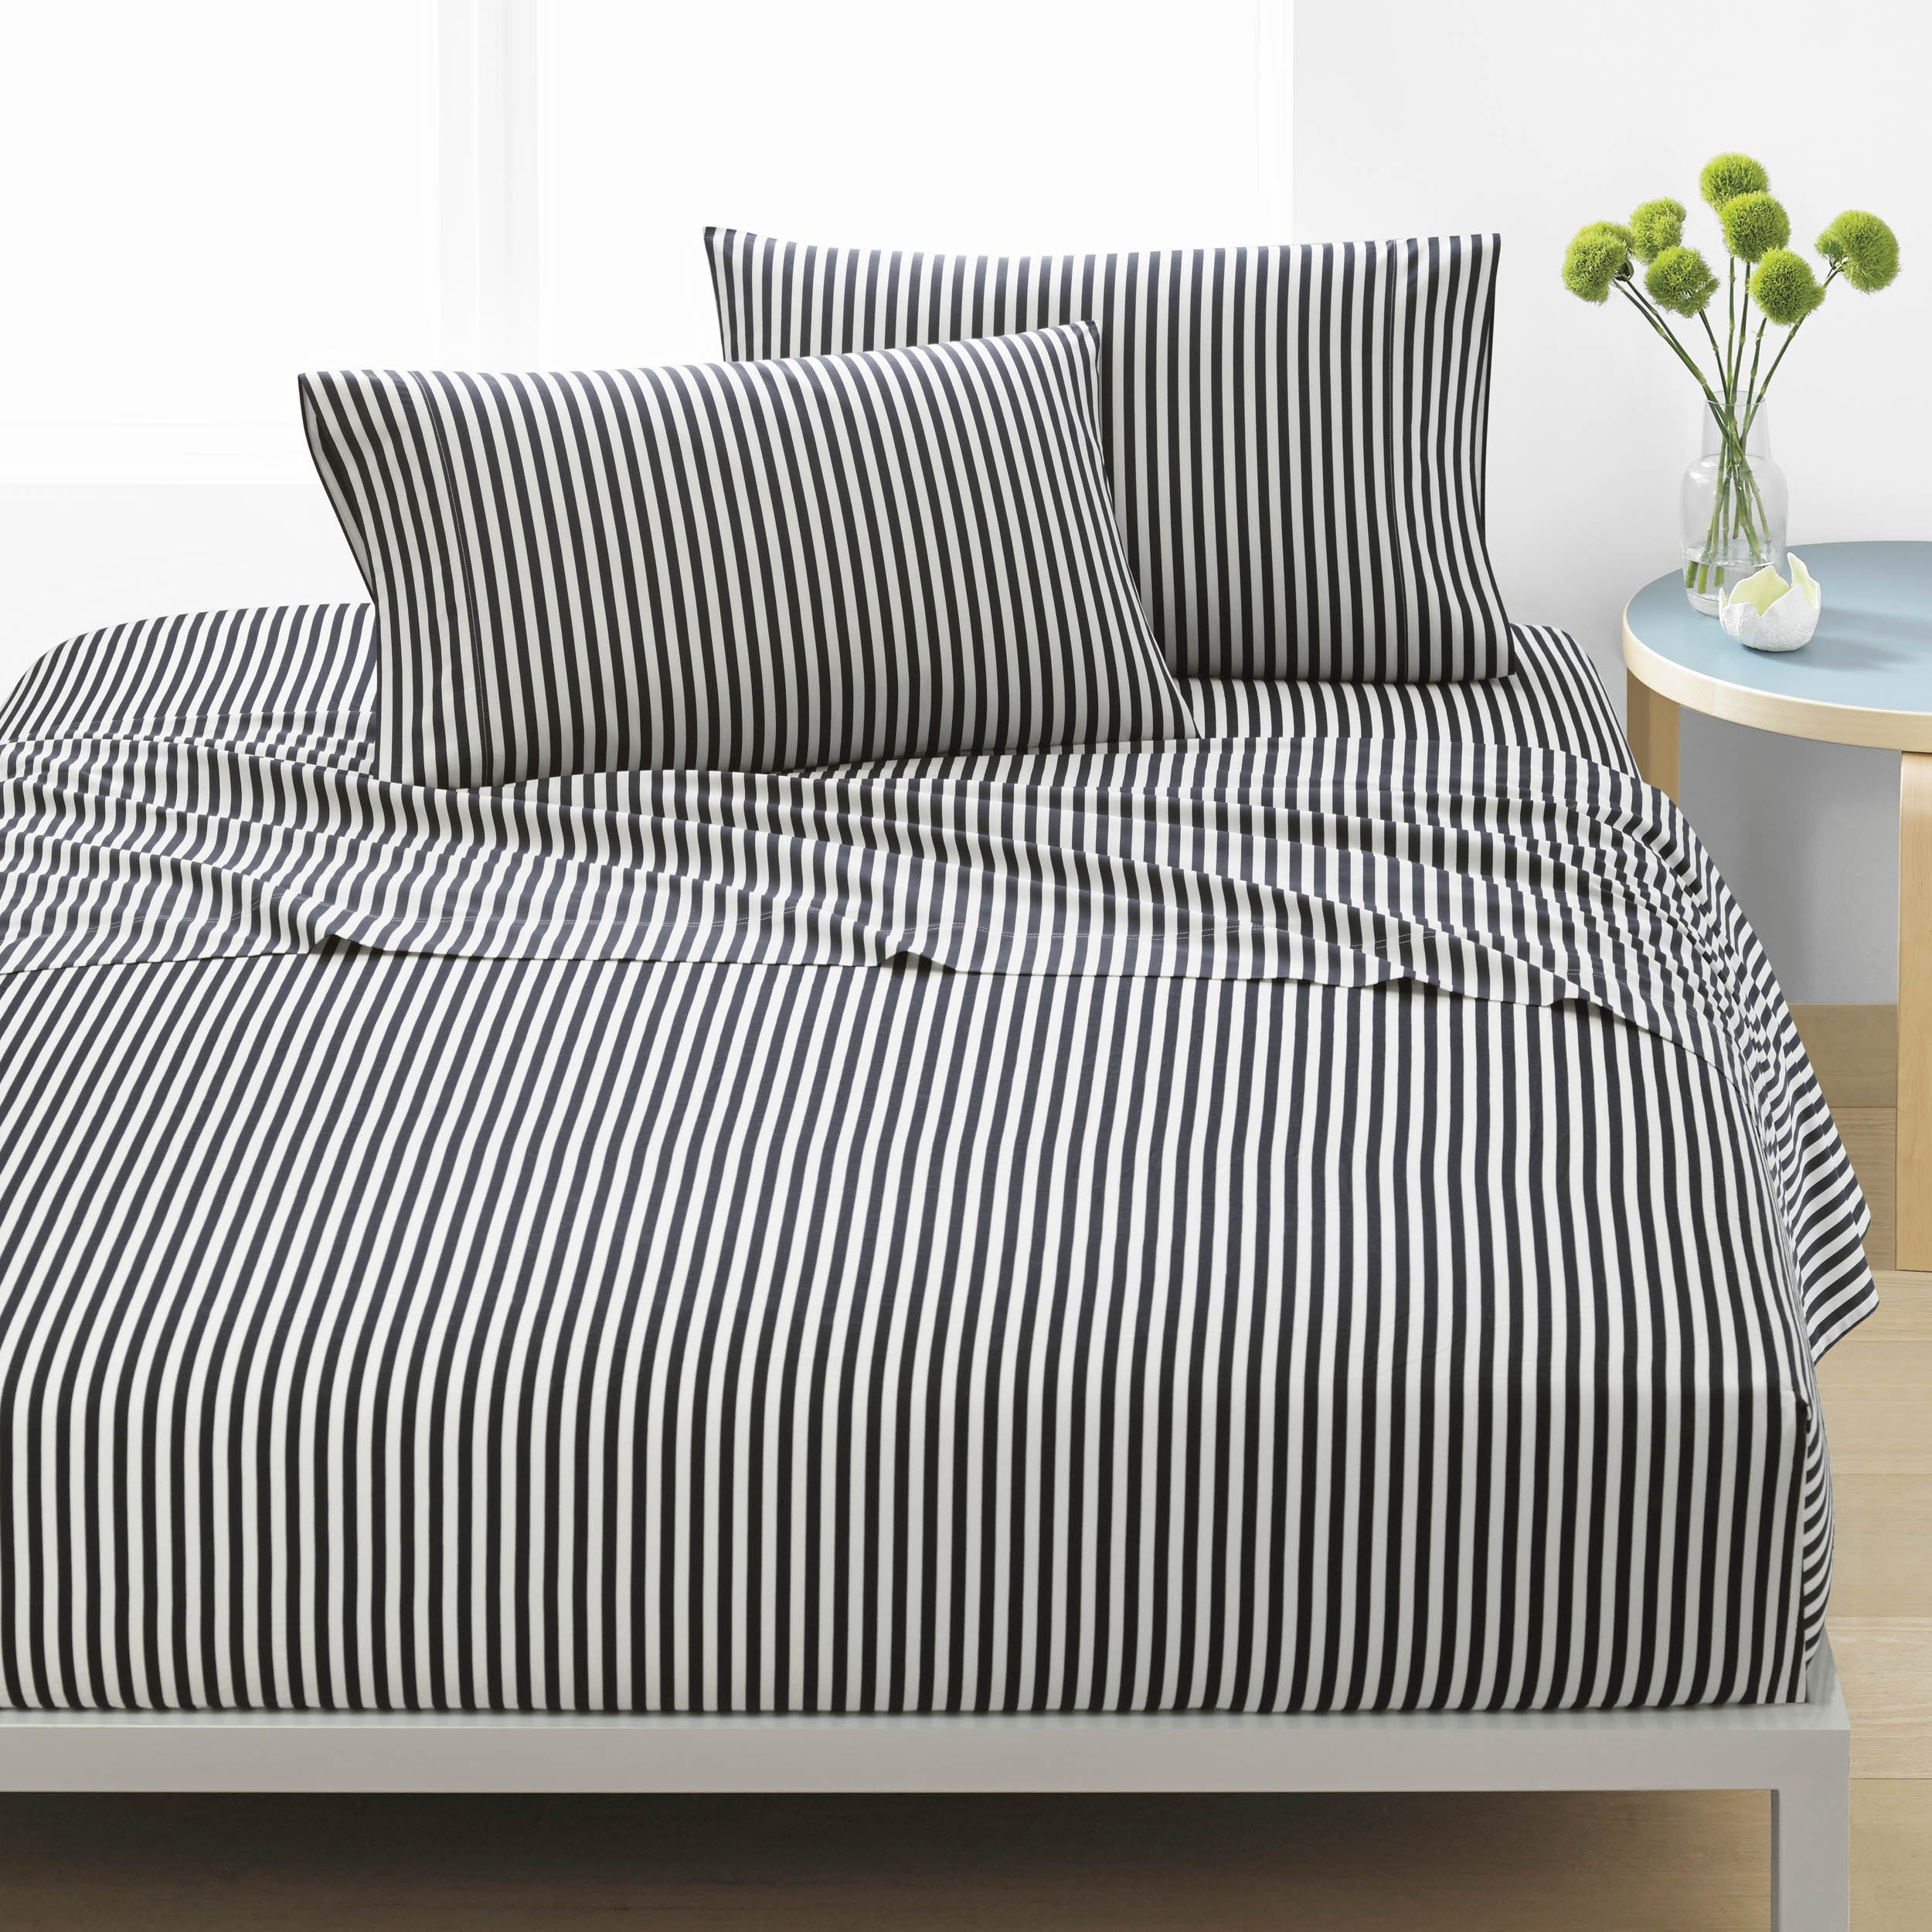 gorgeous bed pure natural marimekko washed sheets duvet best pillows linen flax king cover with size french bedding